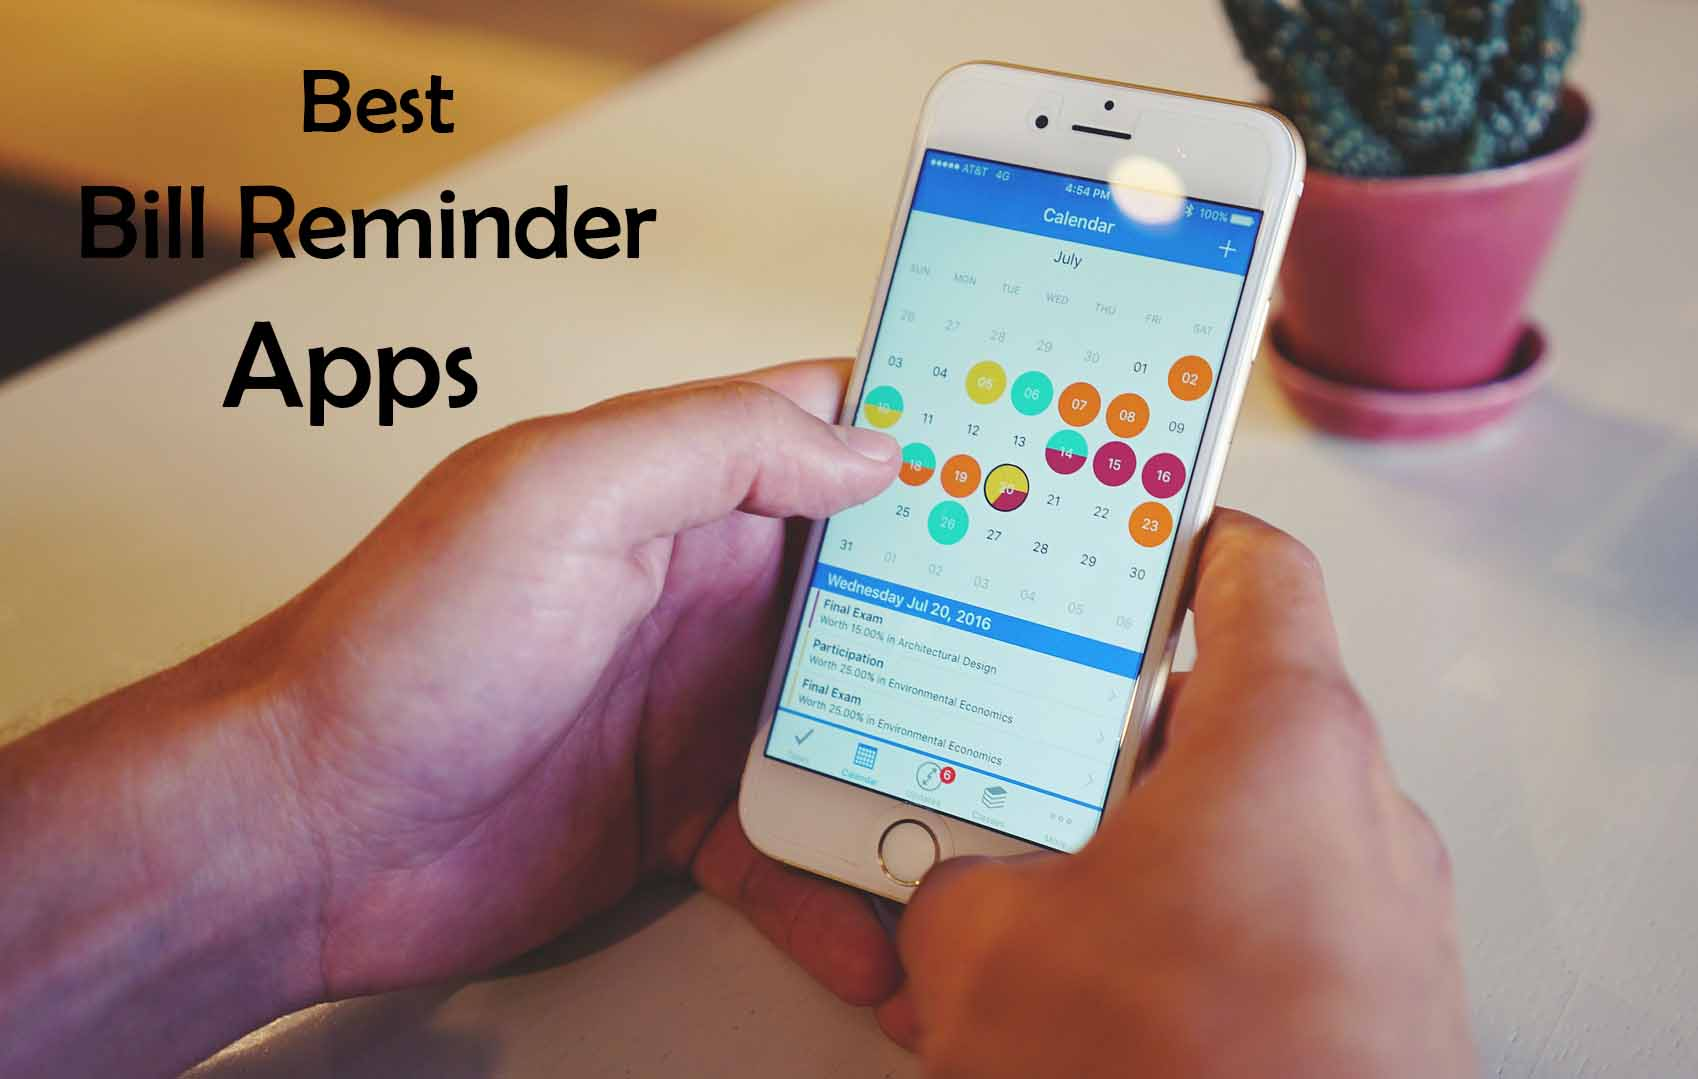 Best Bill Reminder Apps